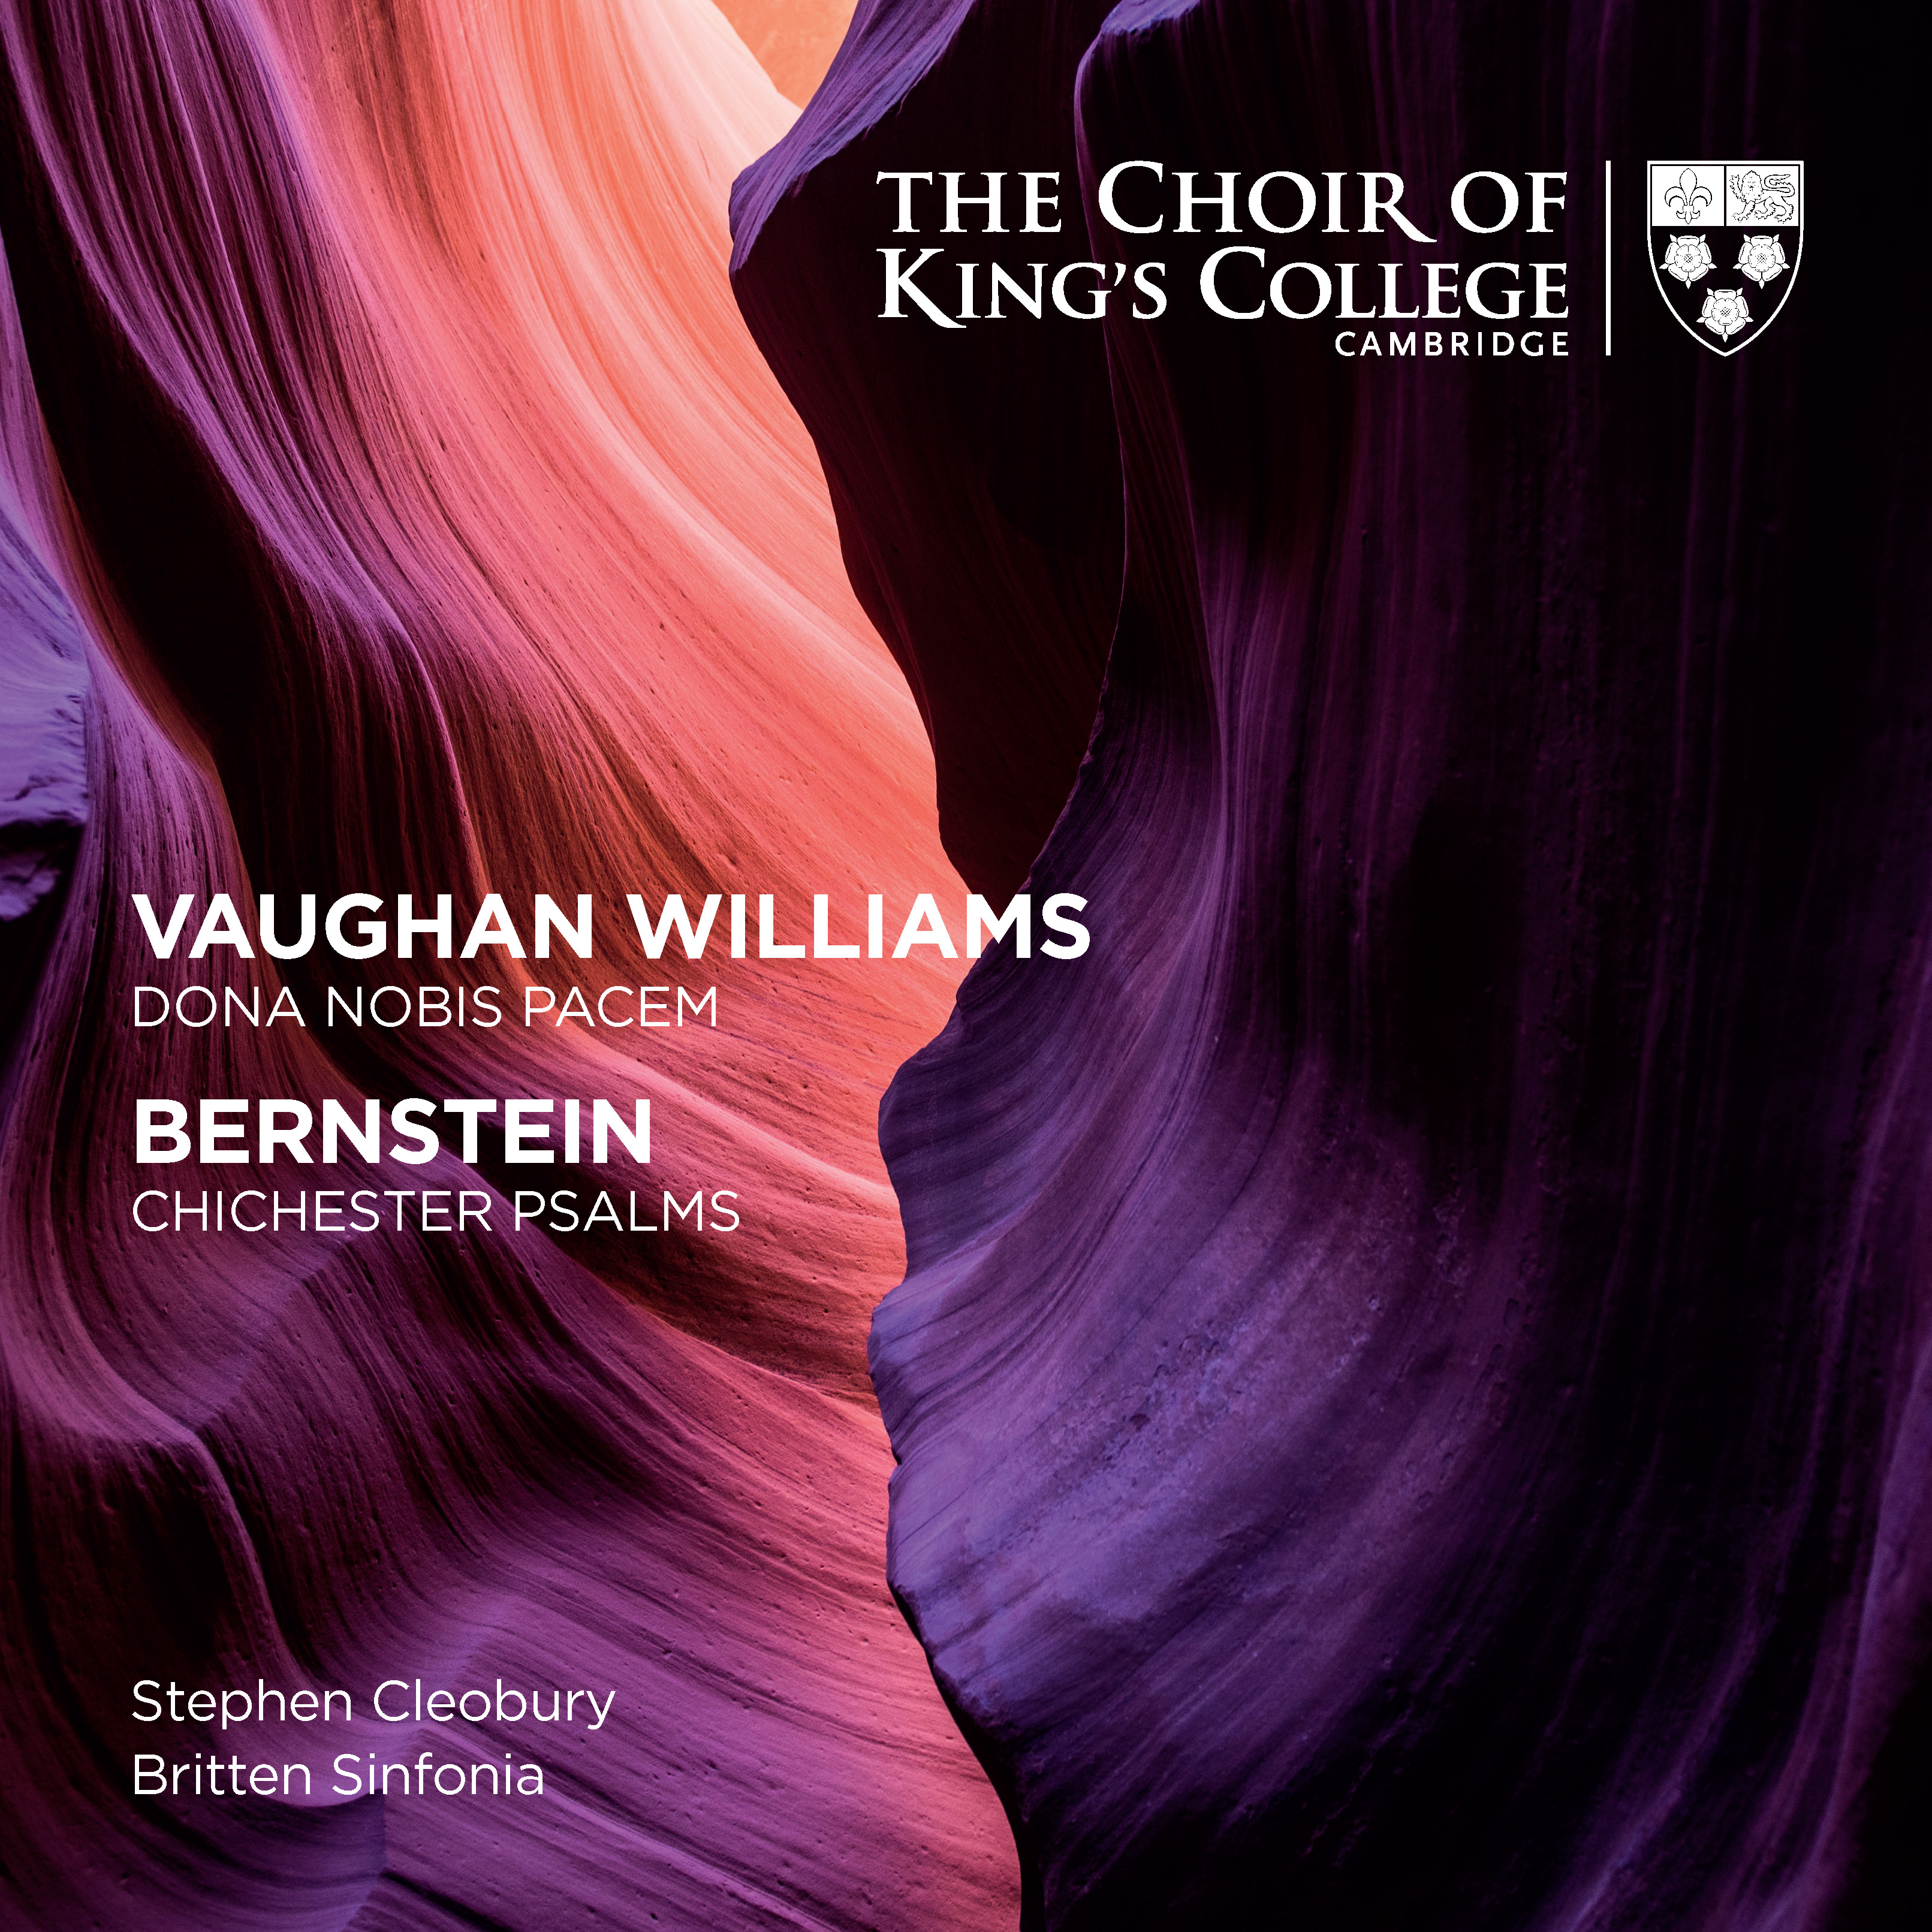 Album cover – Bernstein & Vaughan Williams